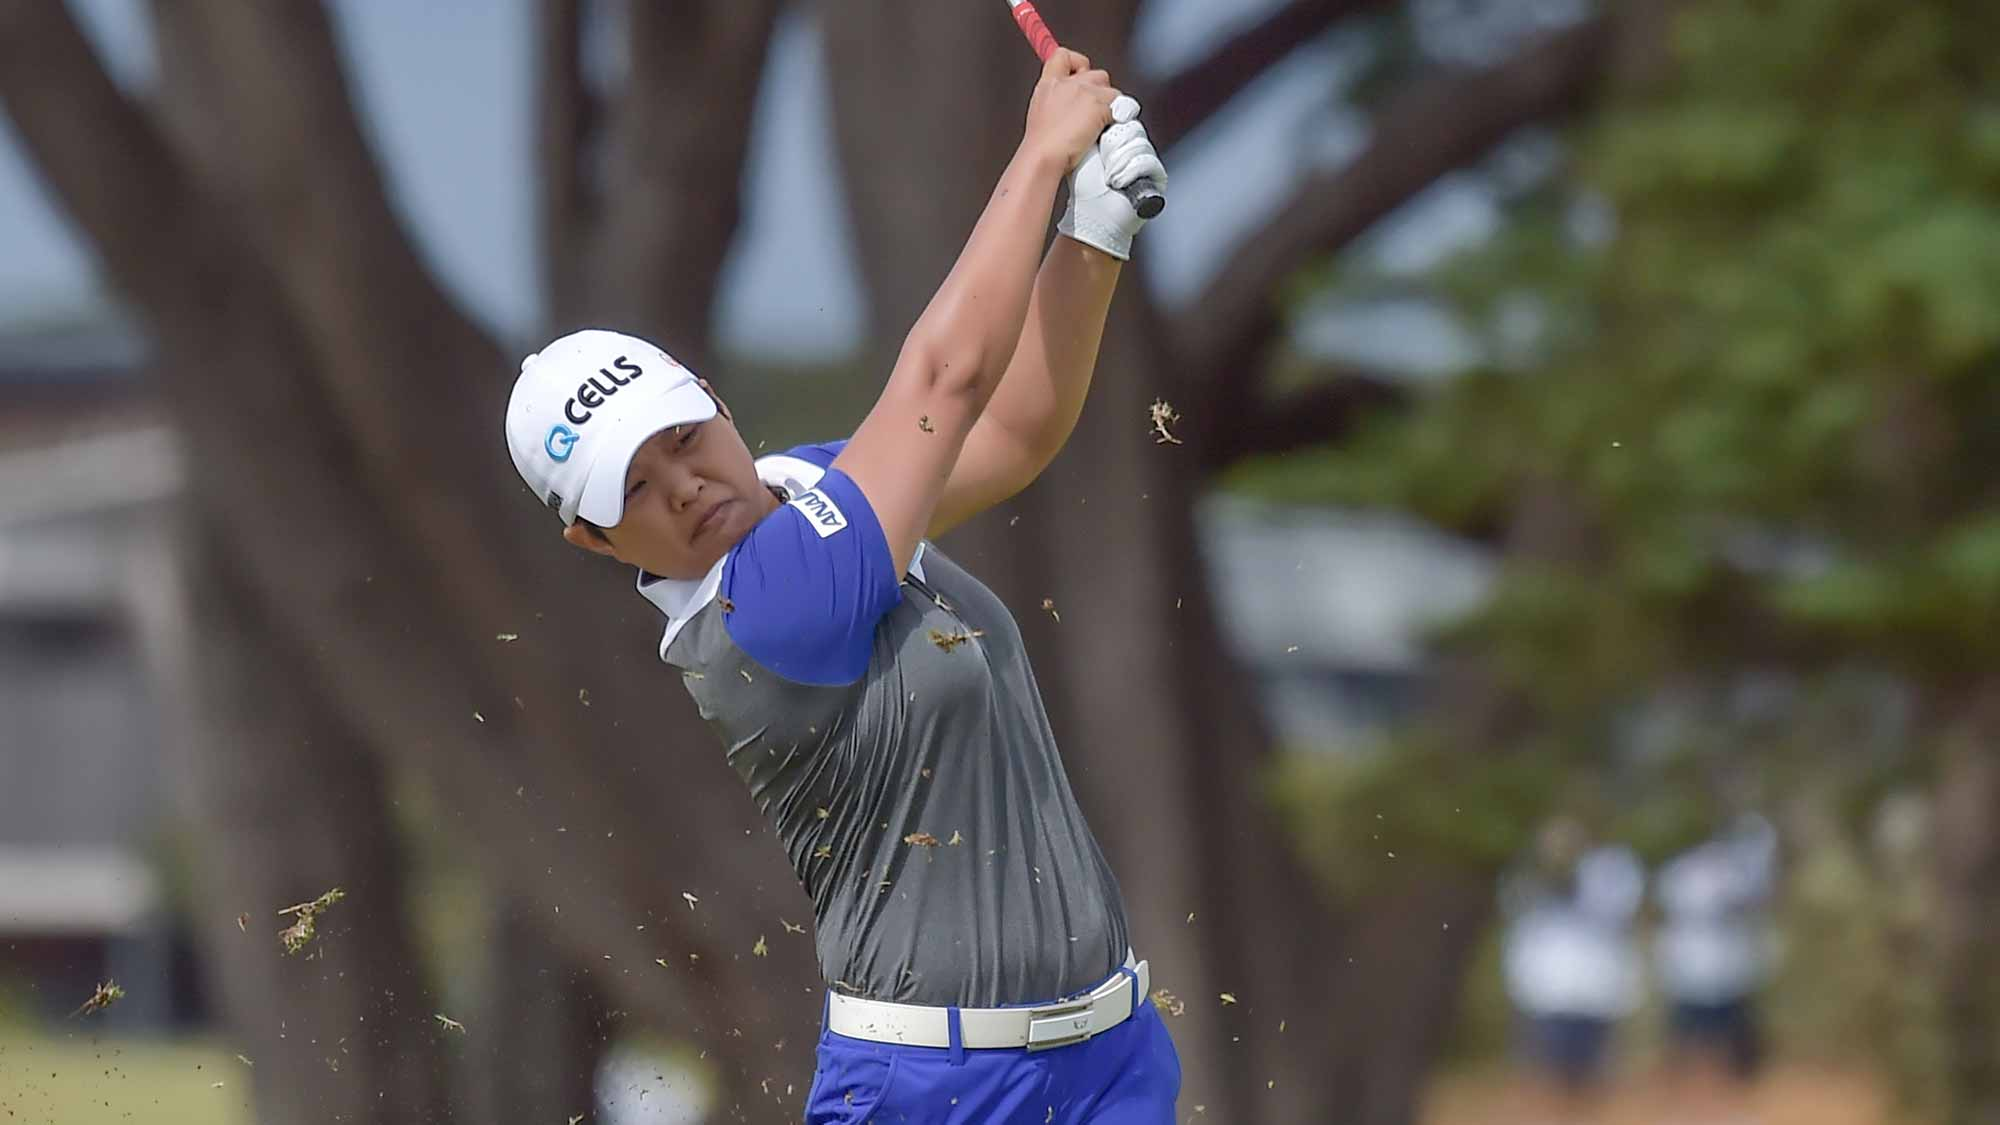 Haru Nomura hits a shot during the second round of the ISPS Handa Vic Open in Geelong, Australia on February 8, 2019